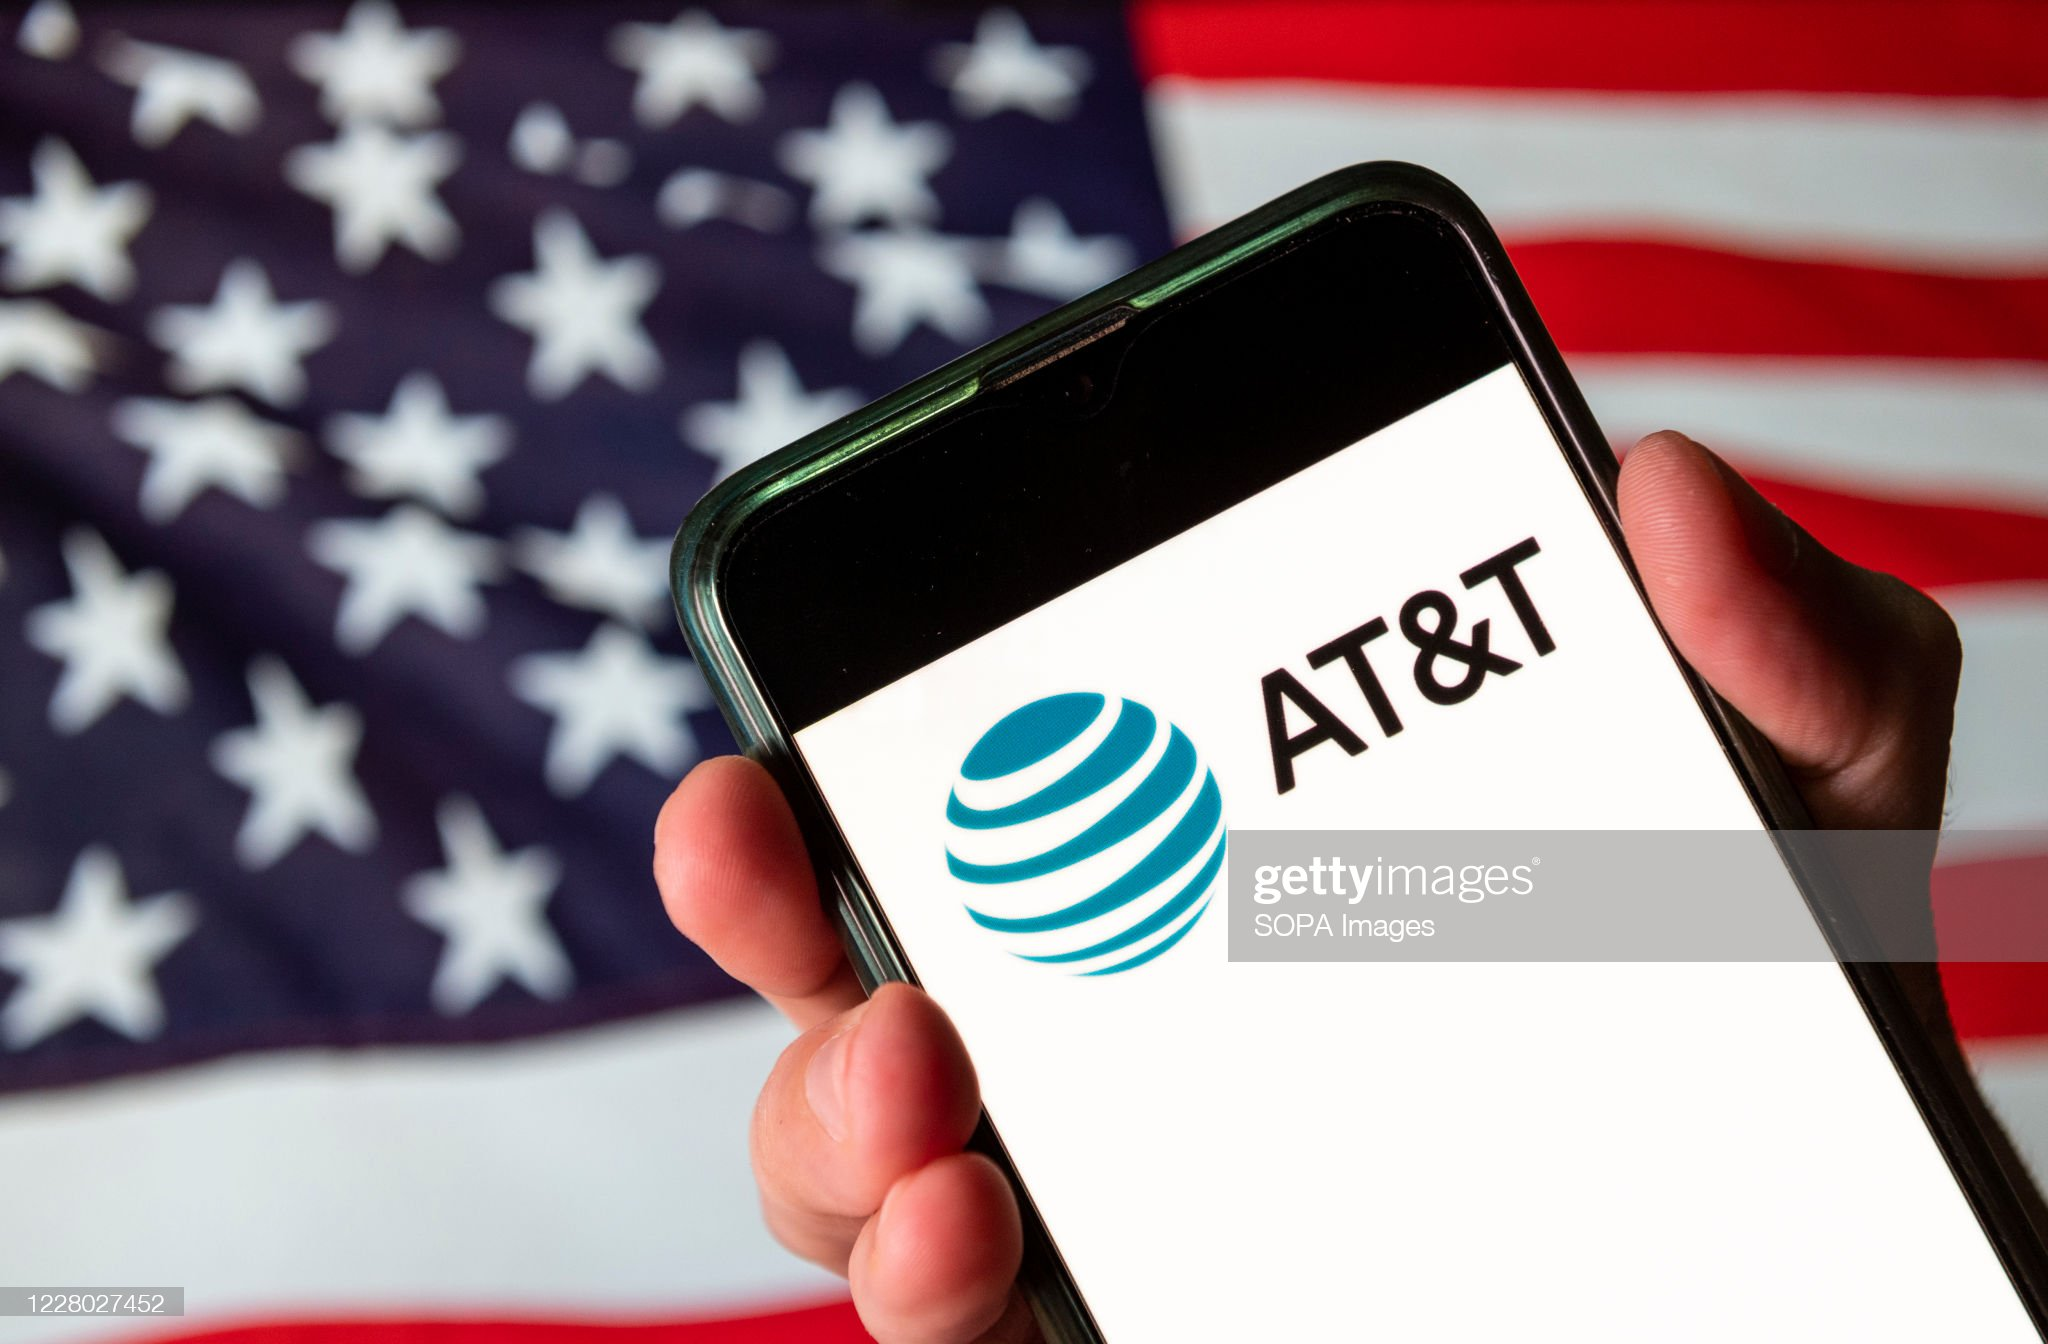 Mobile phone showing AT&T logo